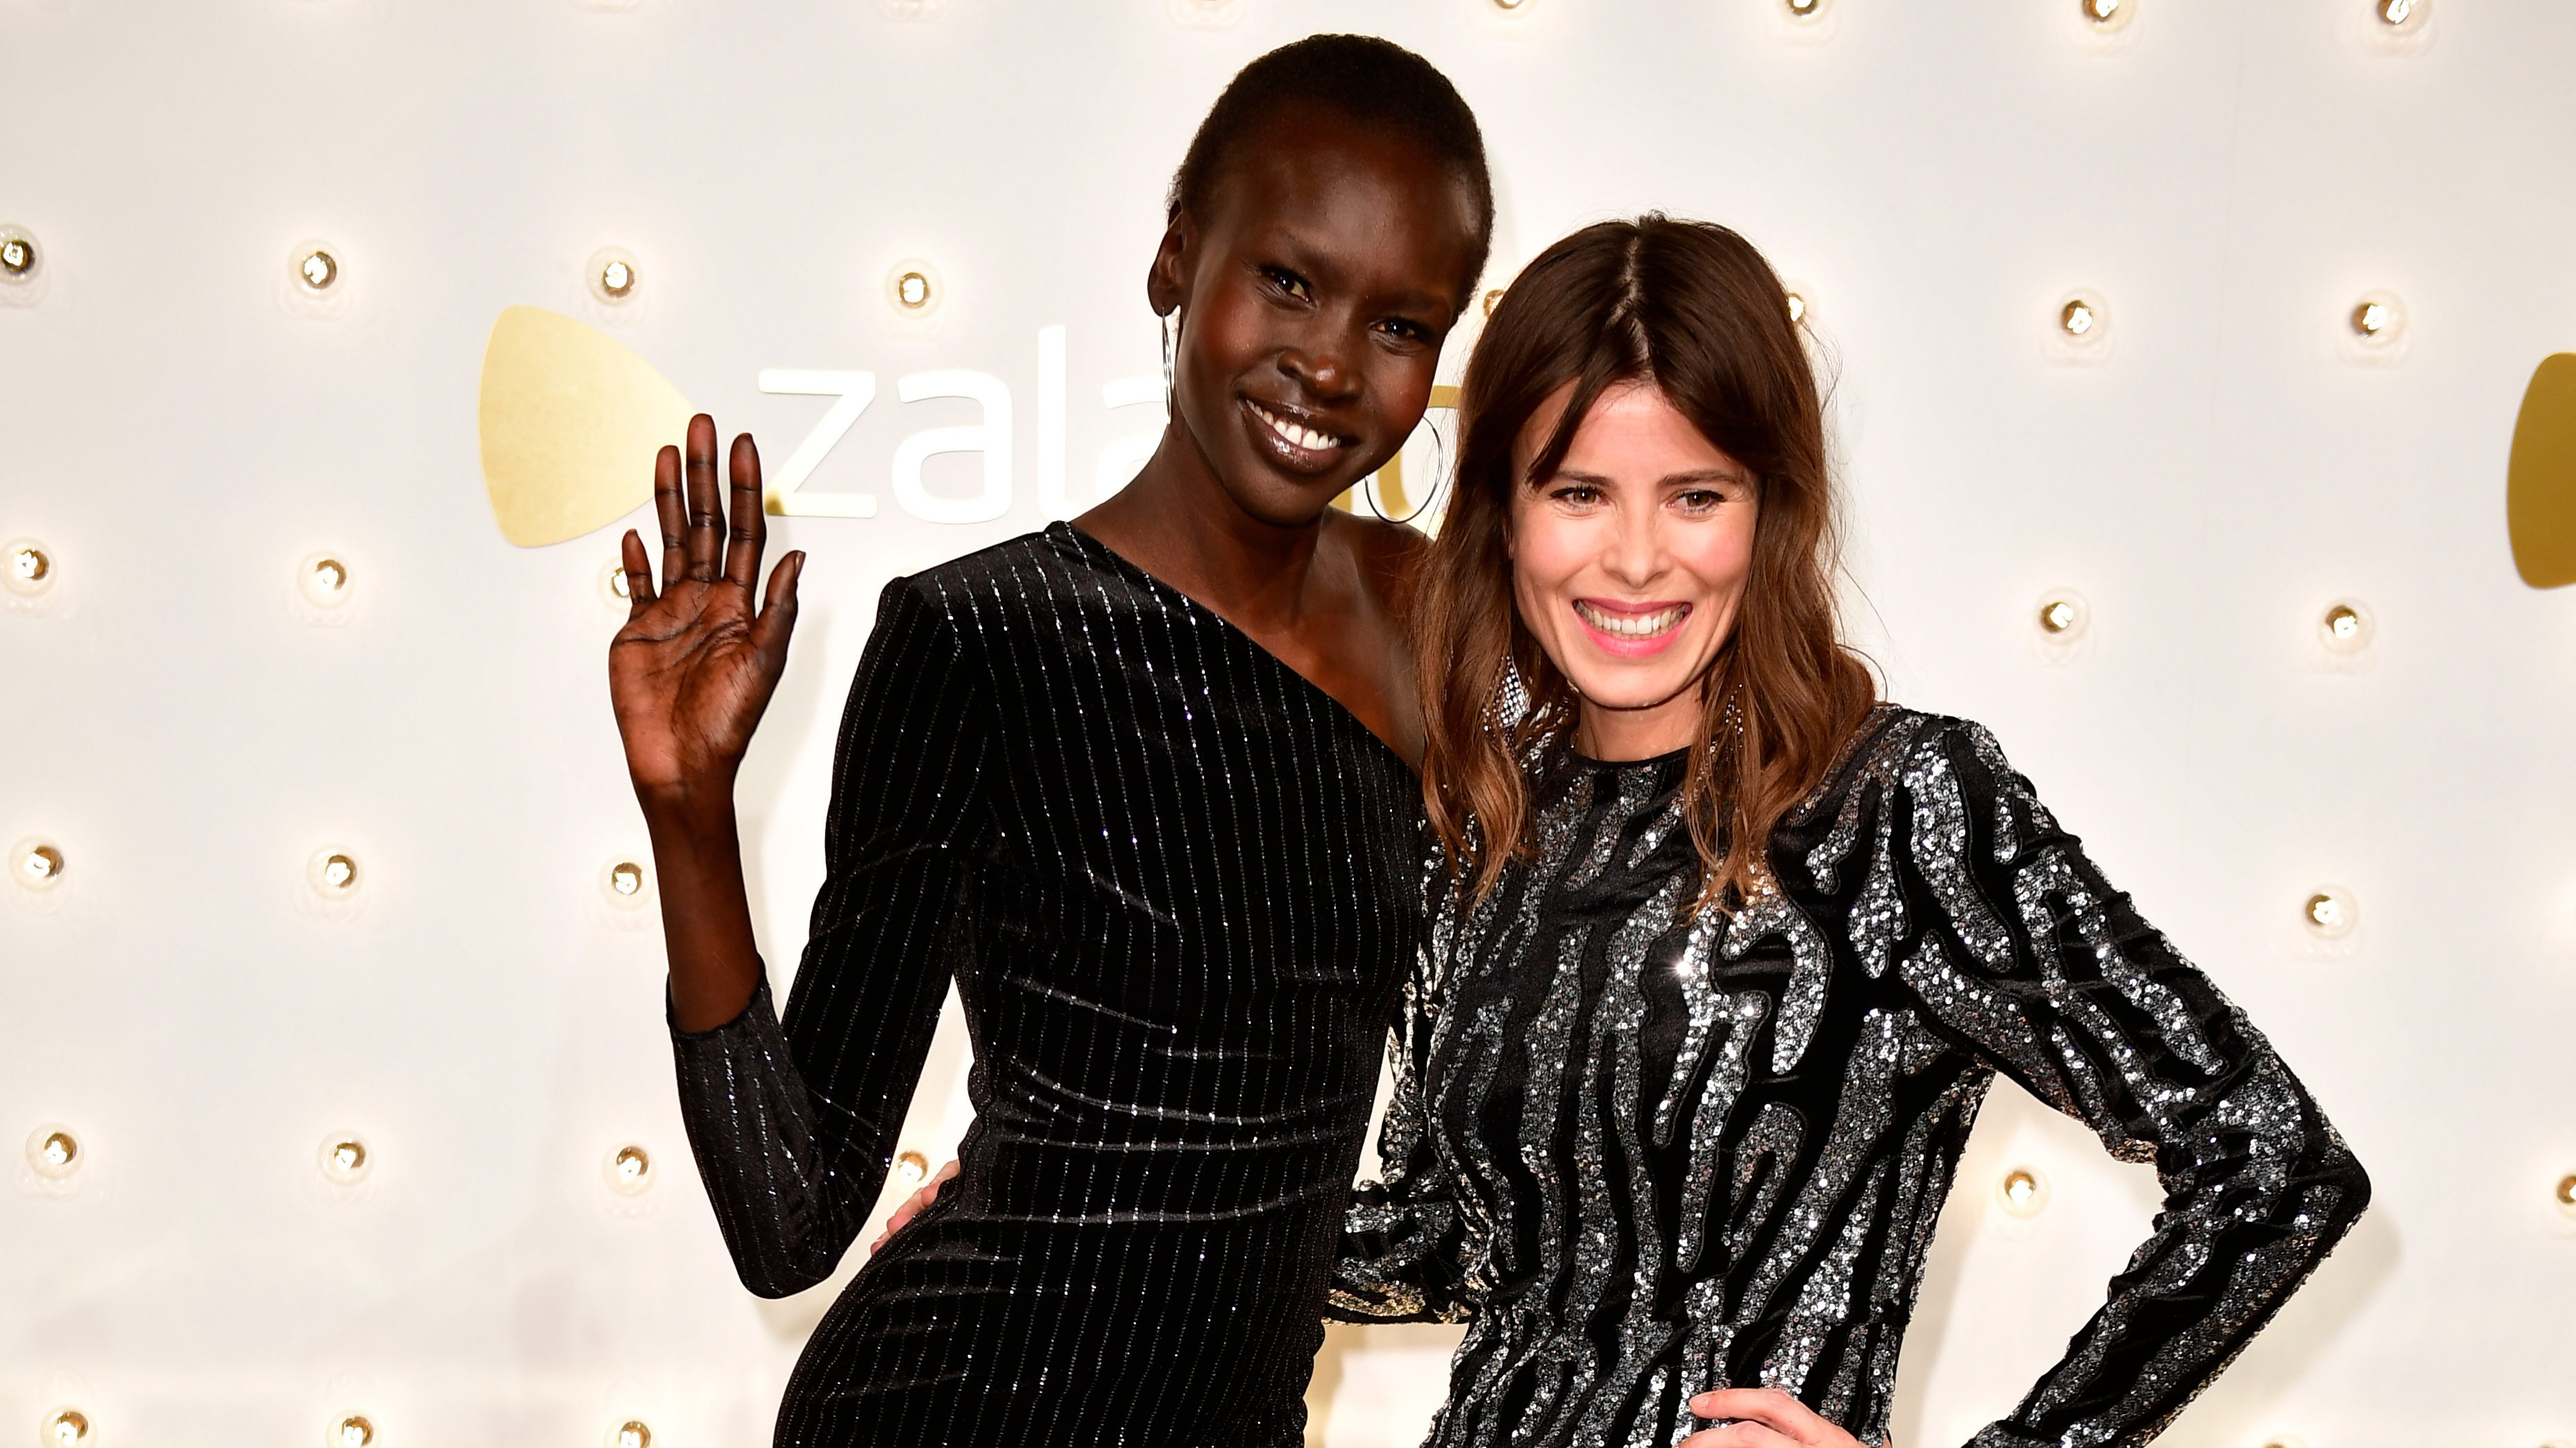 BERLIN, GERMANY - DECEMBER 13: (L-R) Alek Wek and Jolanda Smit attend the Zalando xmas bash hosted by Alek Wek at Haus Ungarn on December 13, 2017 in Berlin, Germany. (Photo by Alexander Koerner/Getty Images for Zalando)